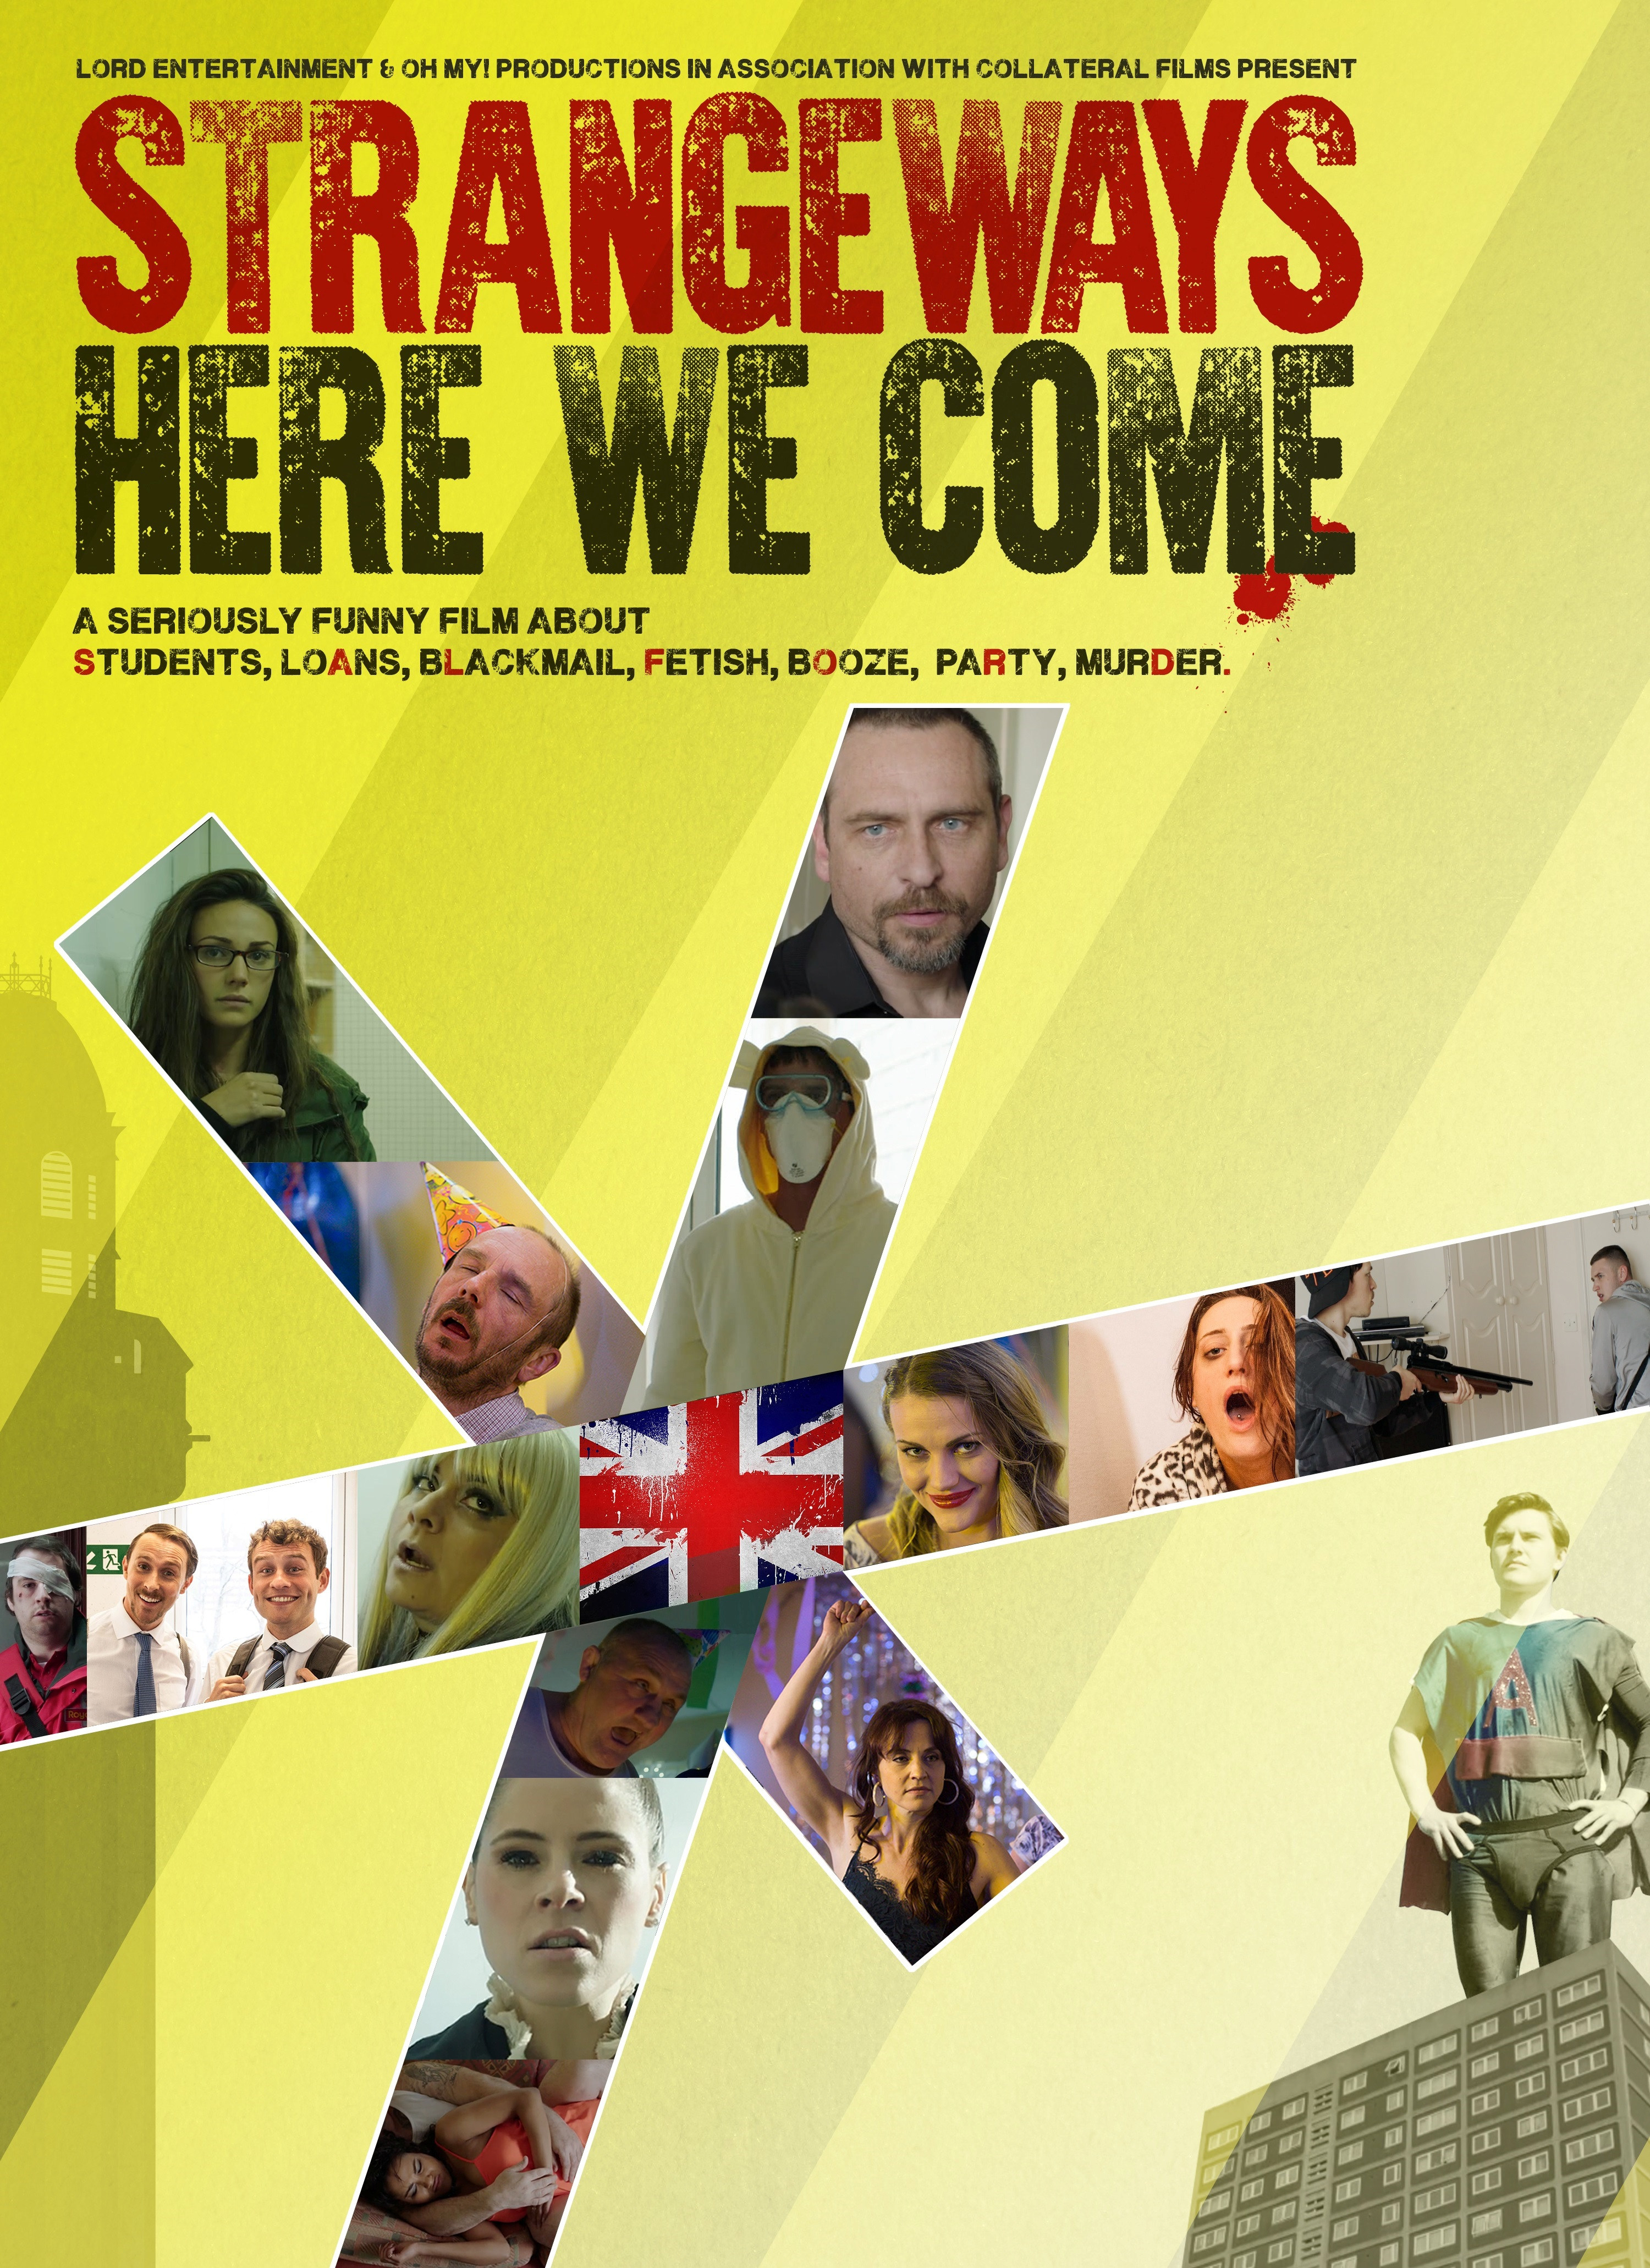 Lord Entertainment & Oh My! Productions in association with Collateral Films  Presents  - Strangeways Here We Come